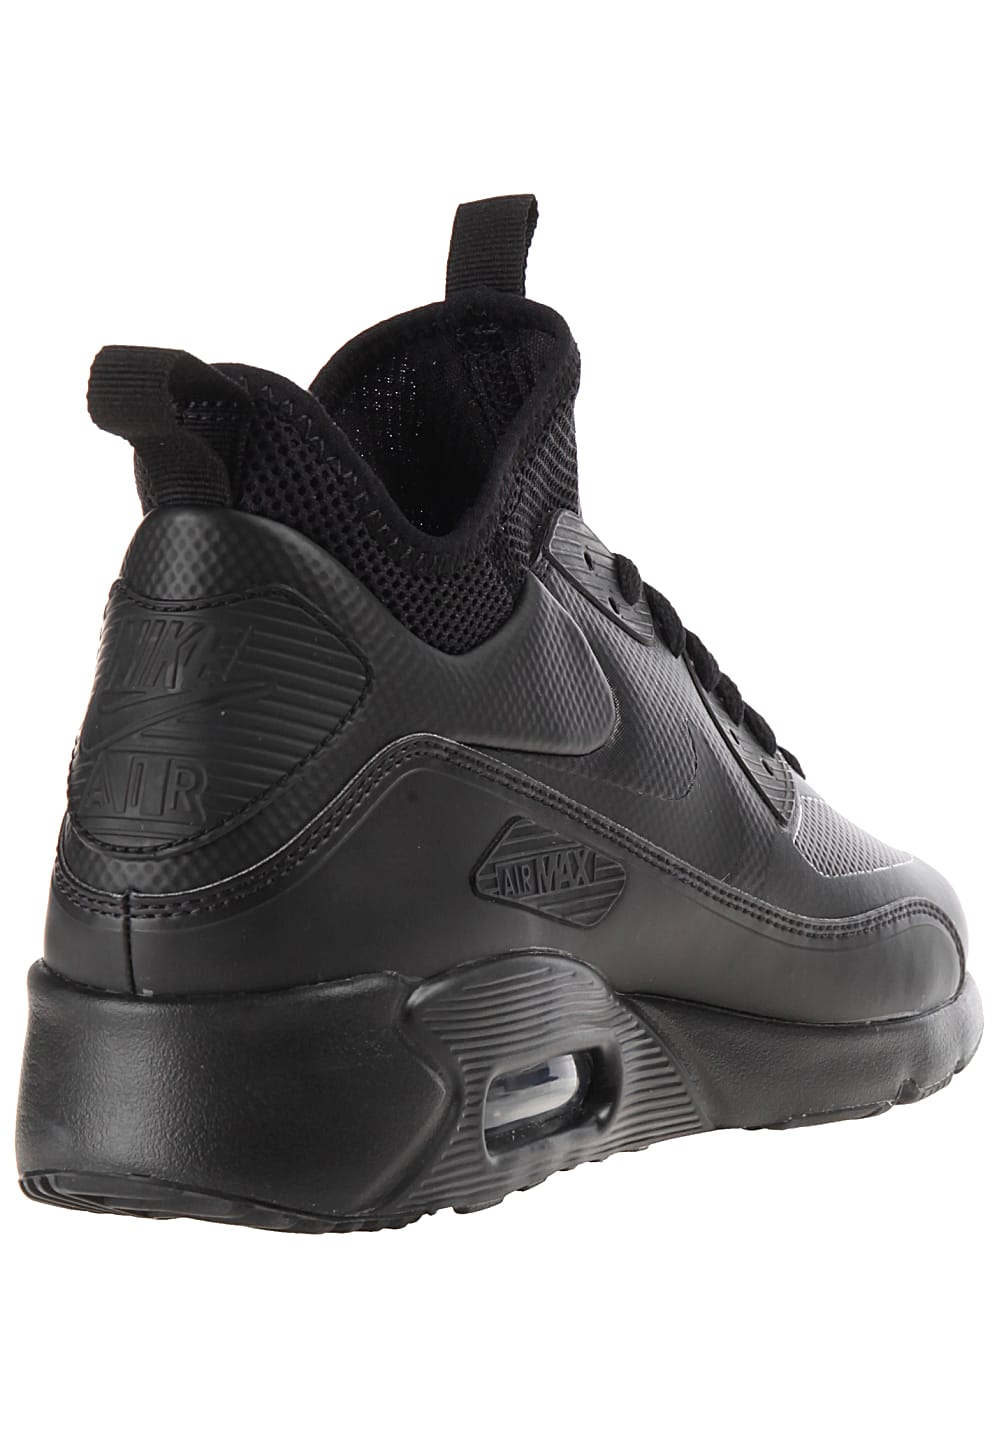 brand new 51aa0 bc606 NIKE SPORTSWEAR Air Max 90 Ultra Mid Winter - Sneakers for Men - Black